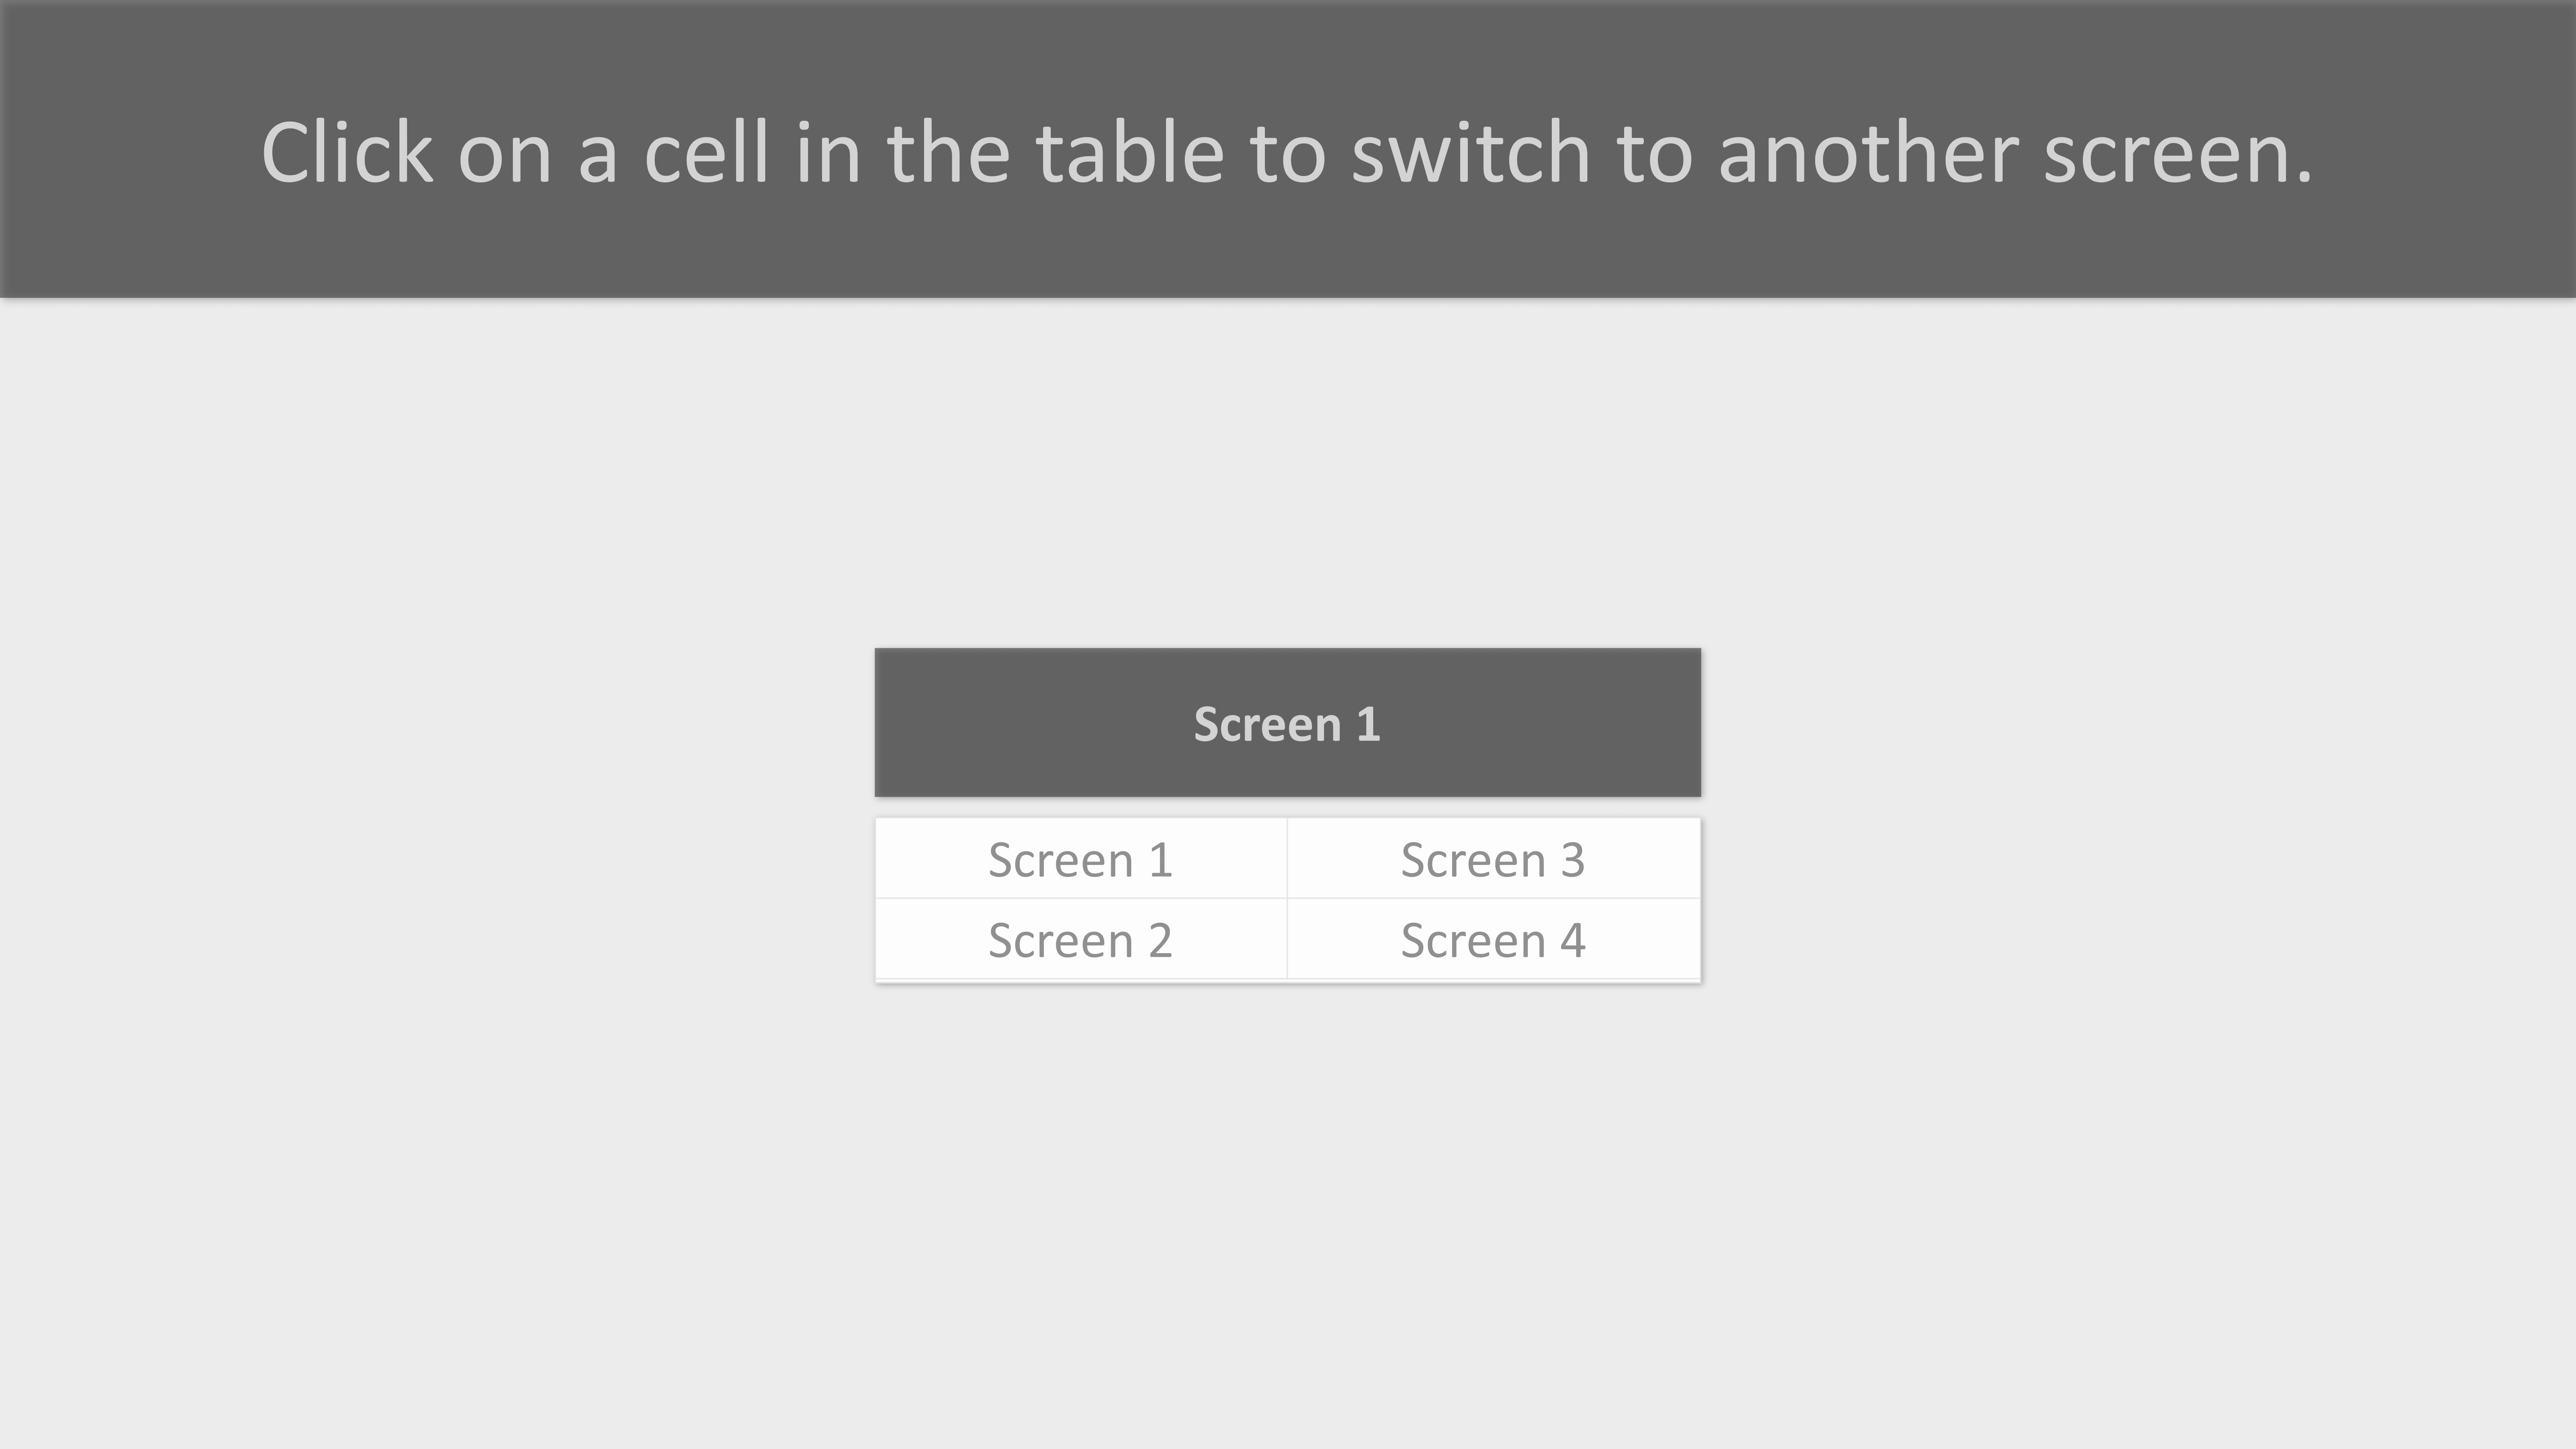 script example for interactive table cells